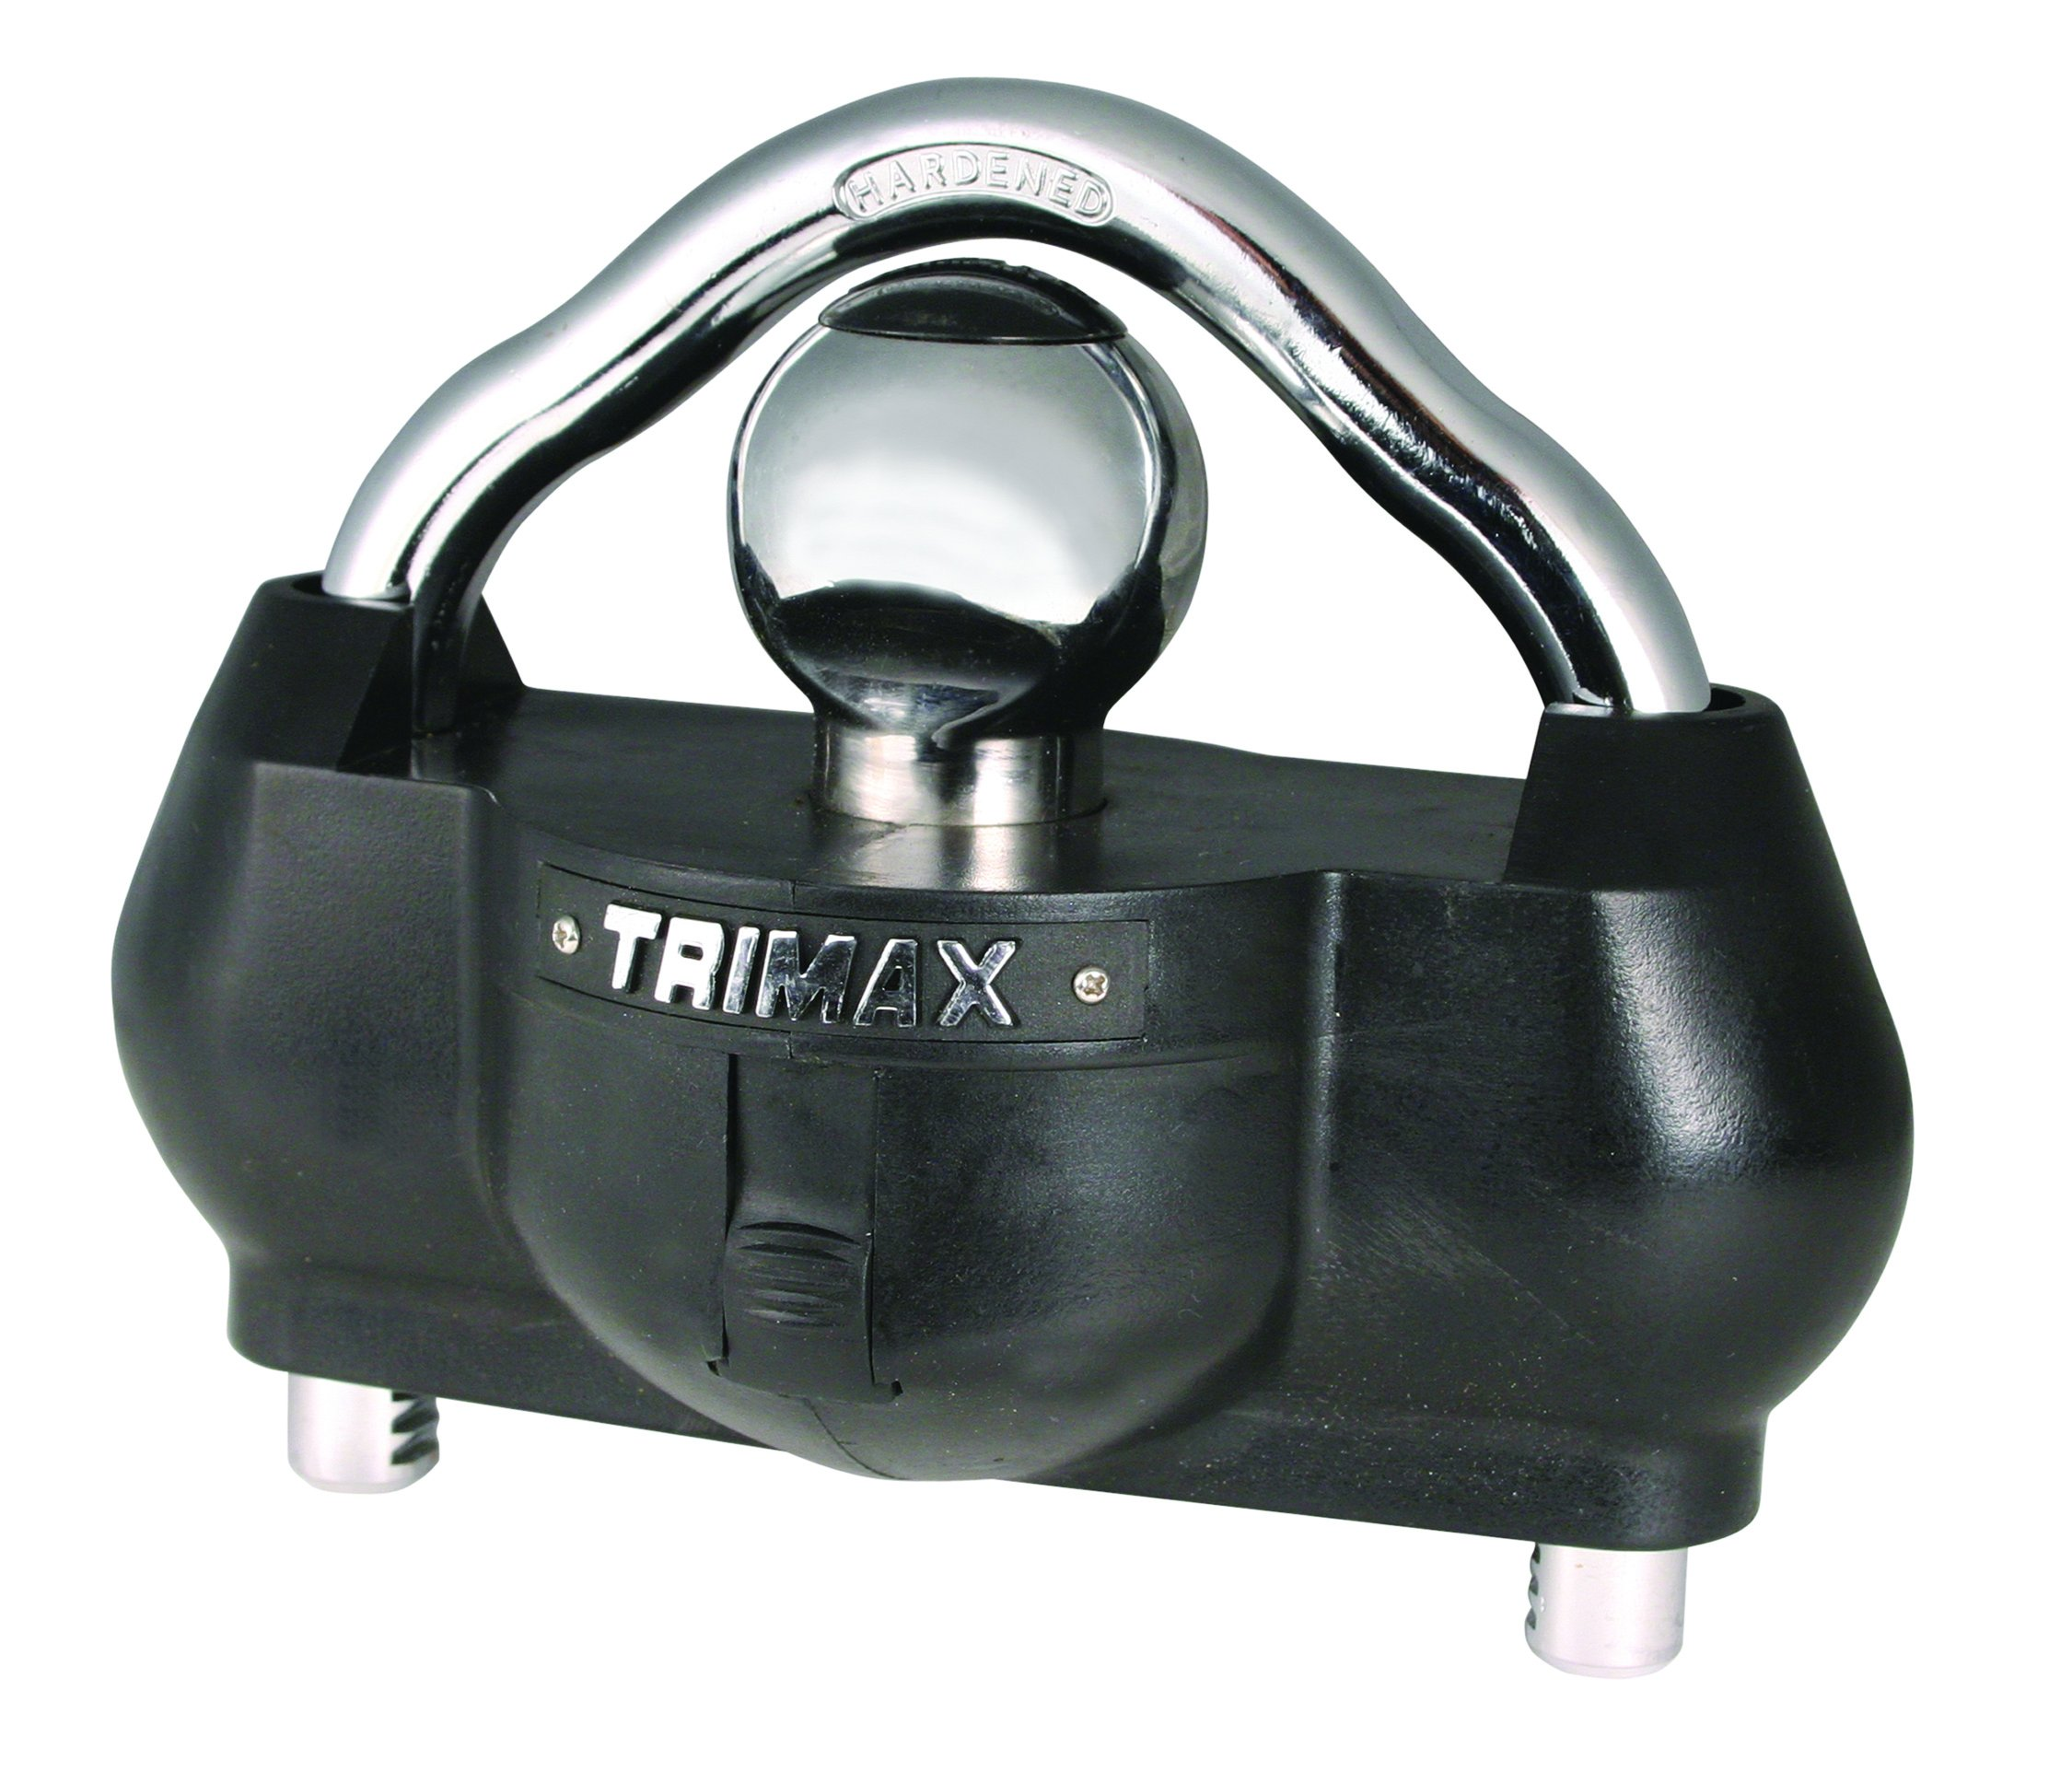 Trimax UMAX100 Premium Universal 'Solid Hardened Steel' Trailer Lock (fits All couplers) by Trimax